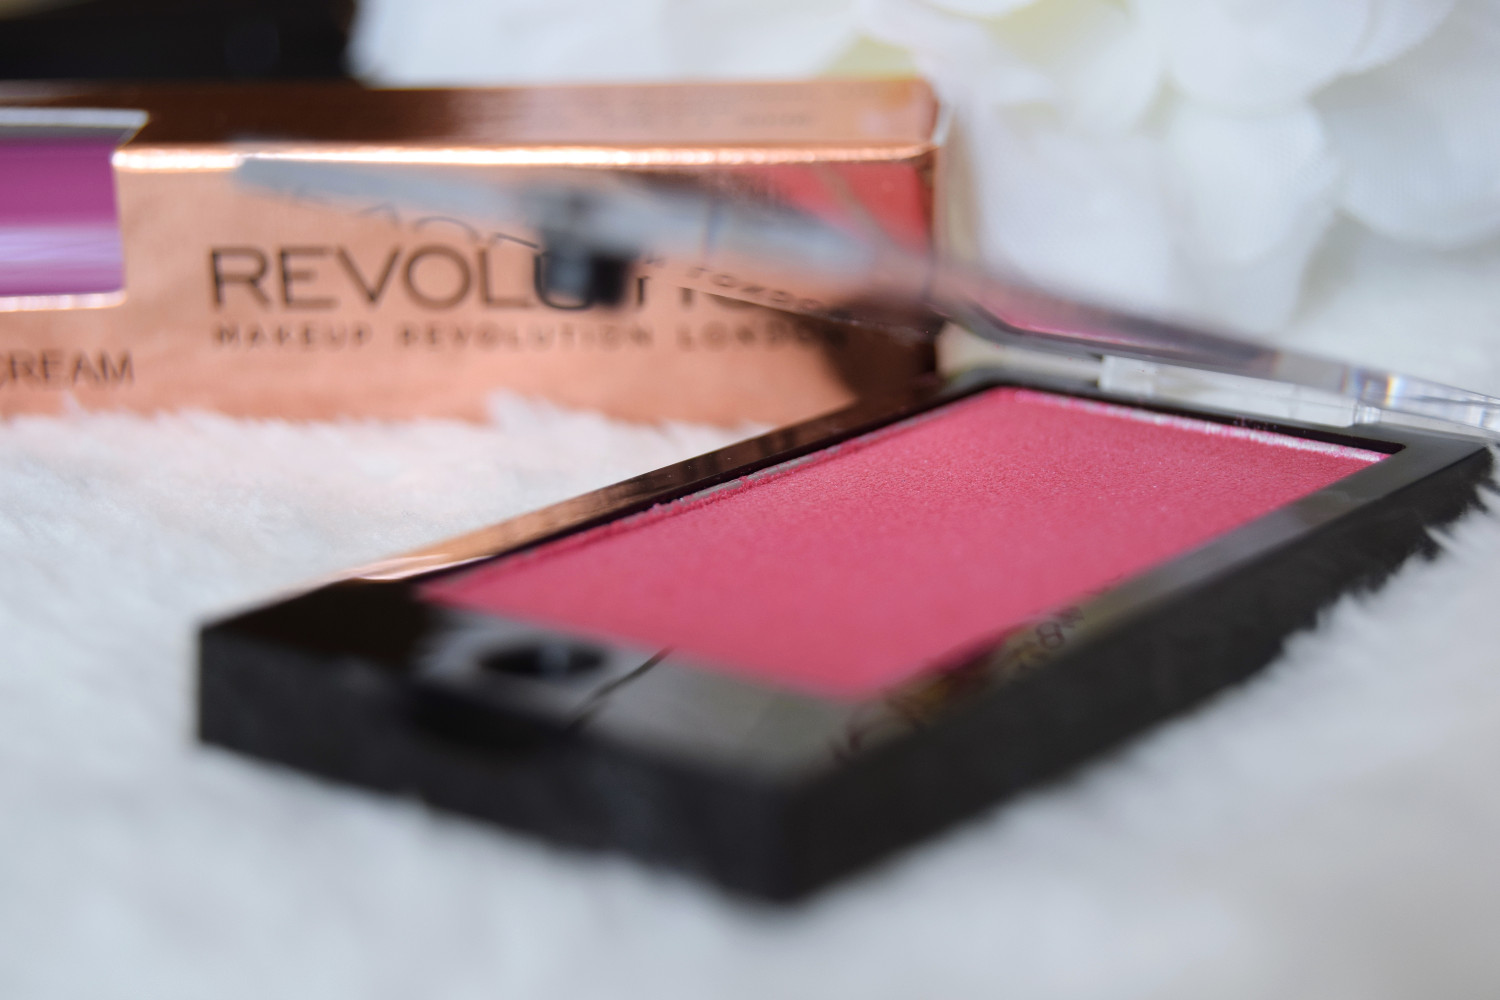 Makeup_Revolution_London_haul_review_lip_cream_eyeshadow_pink_Zalabell_3